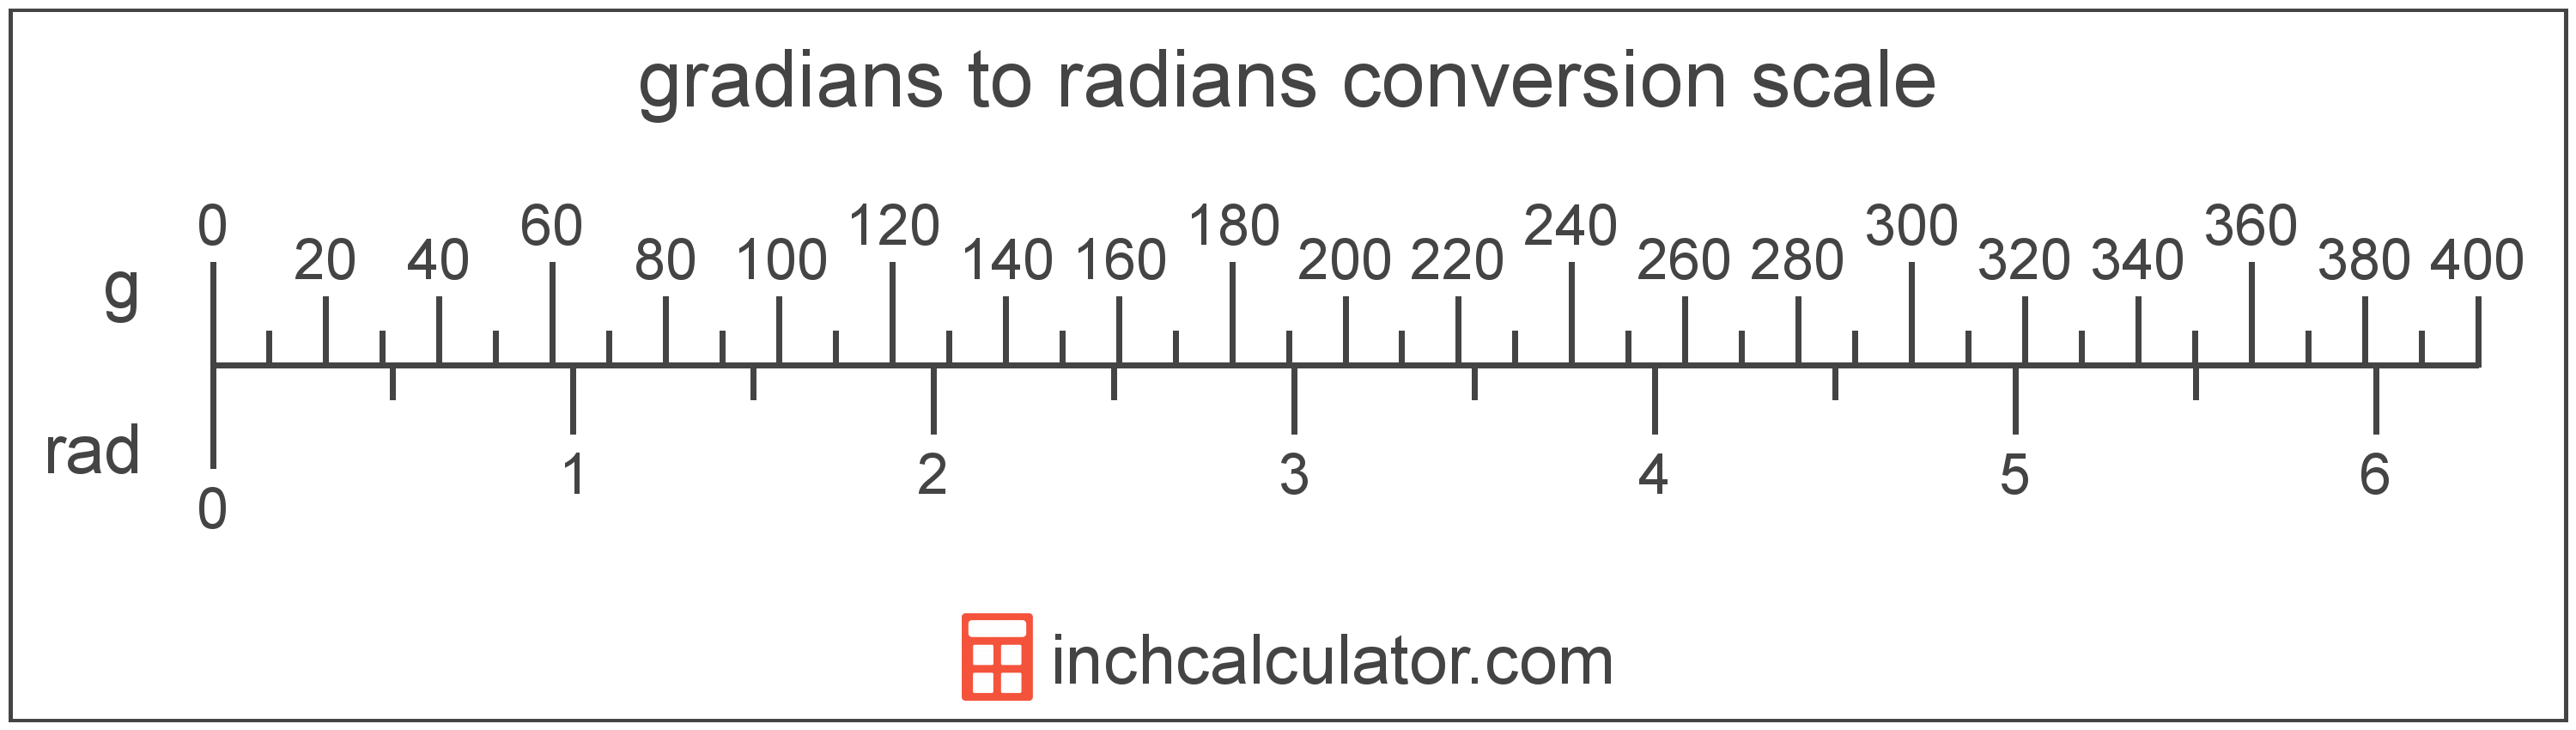 conversion scale showing gradians and equivalent radians angle values